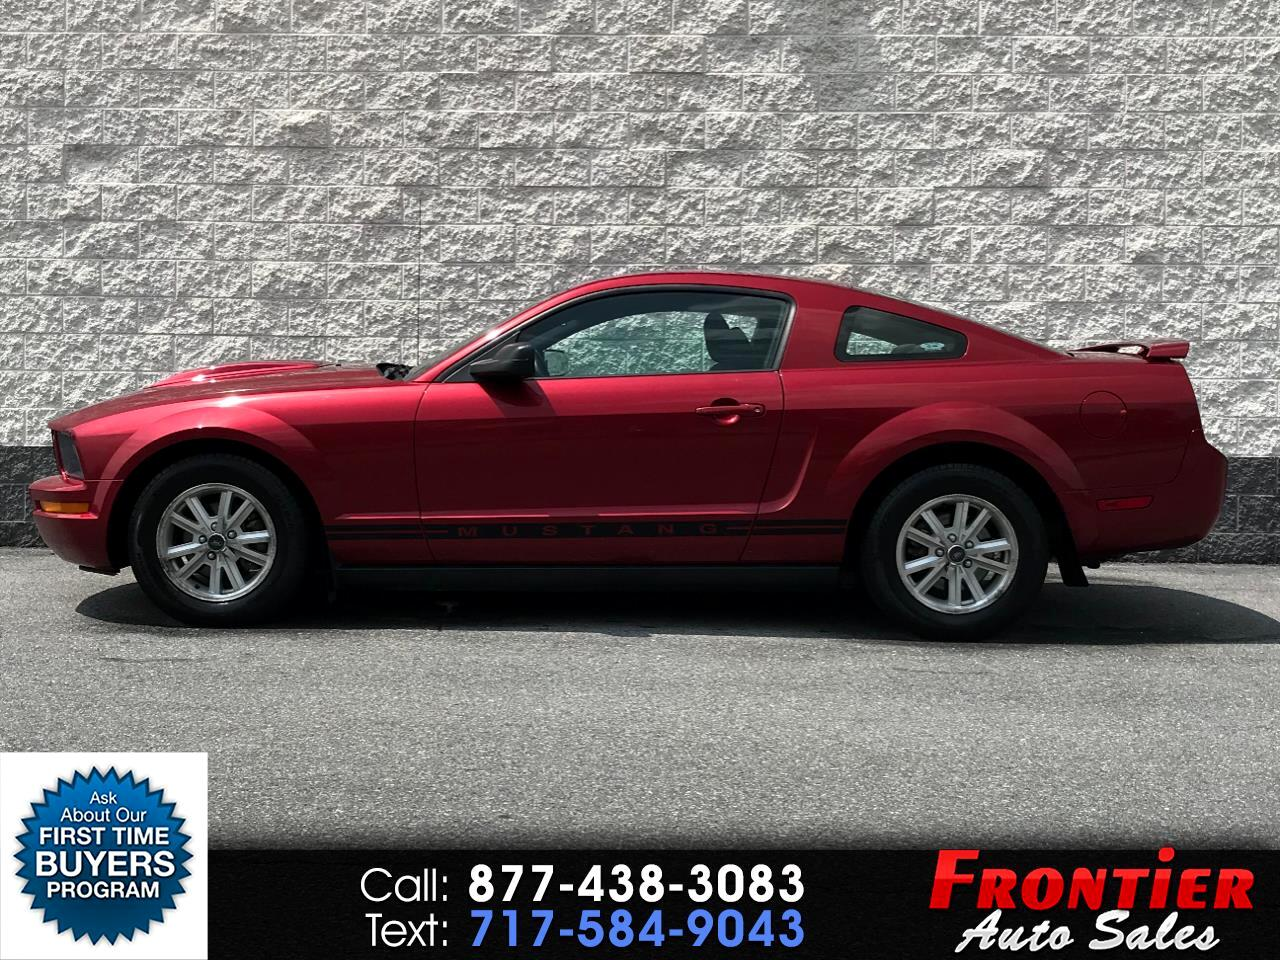 2006 Ford Mustang 2dr Cpe